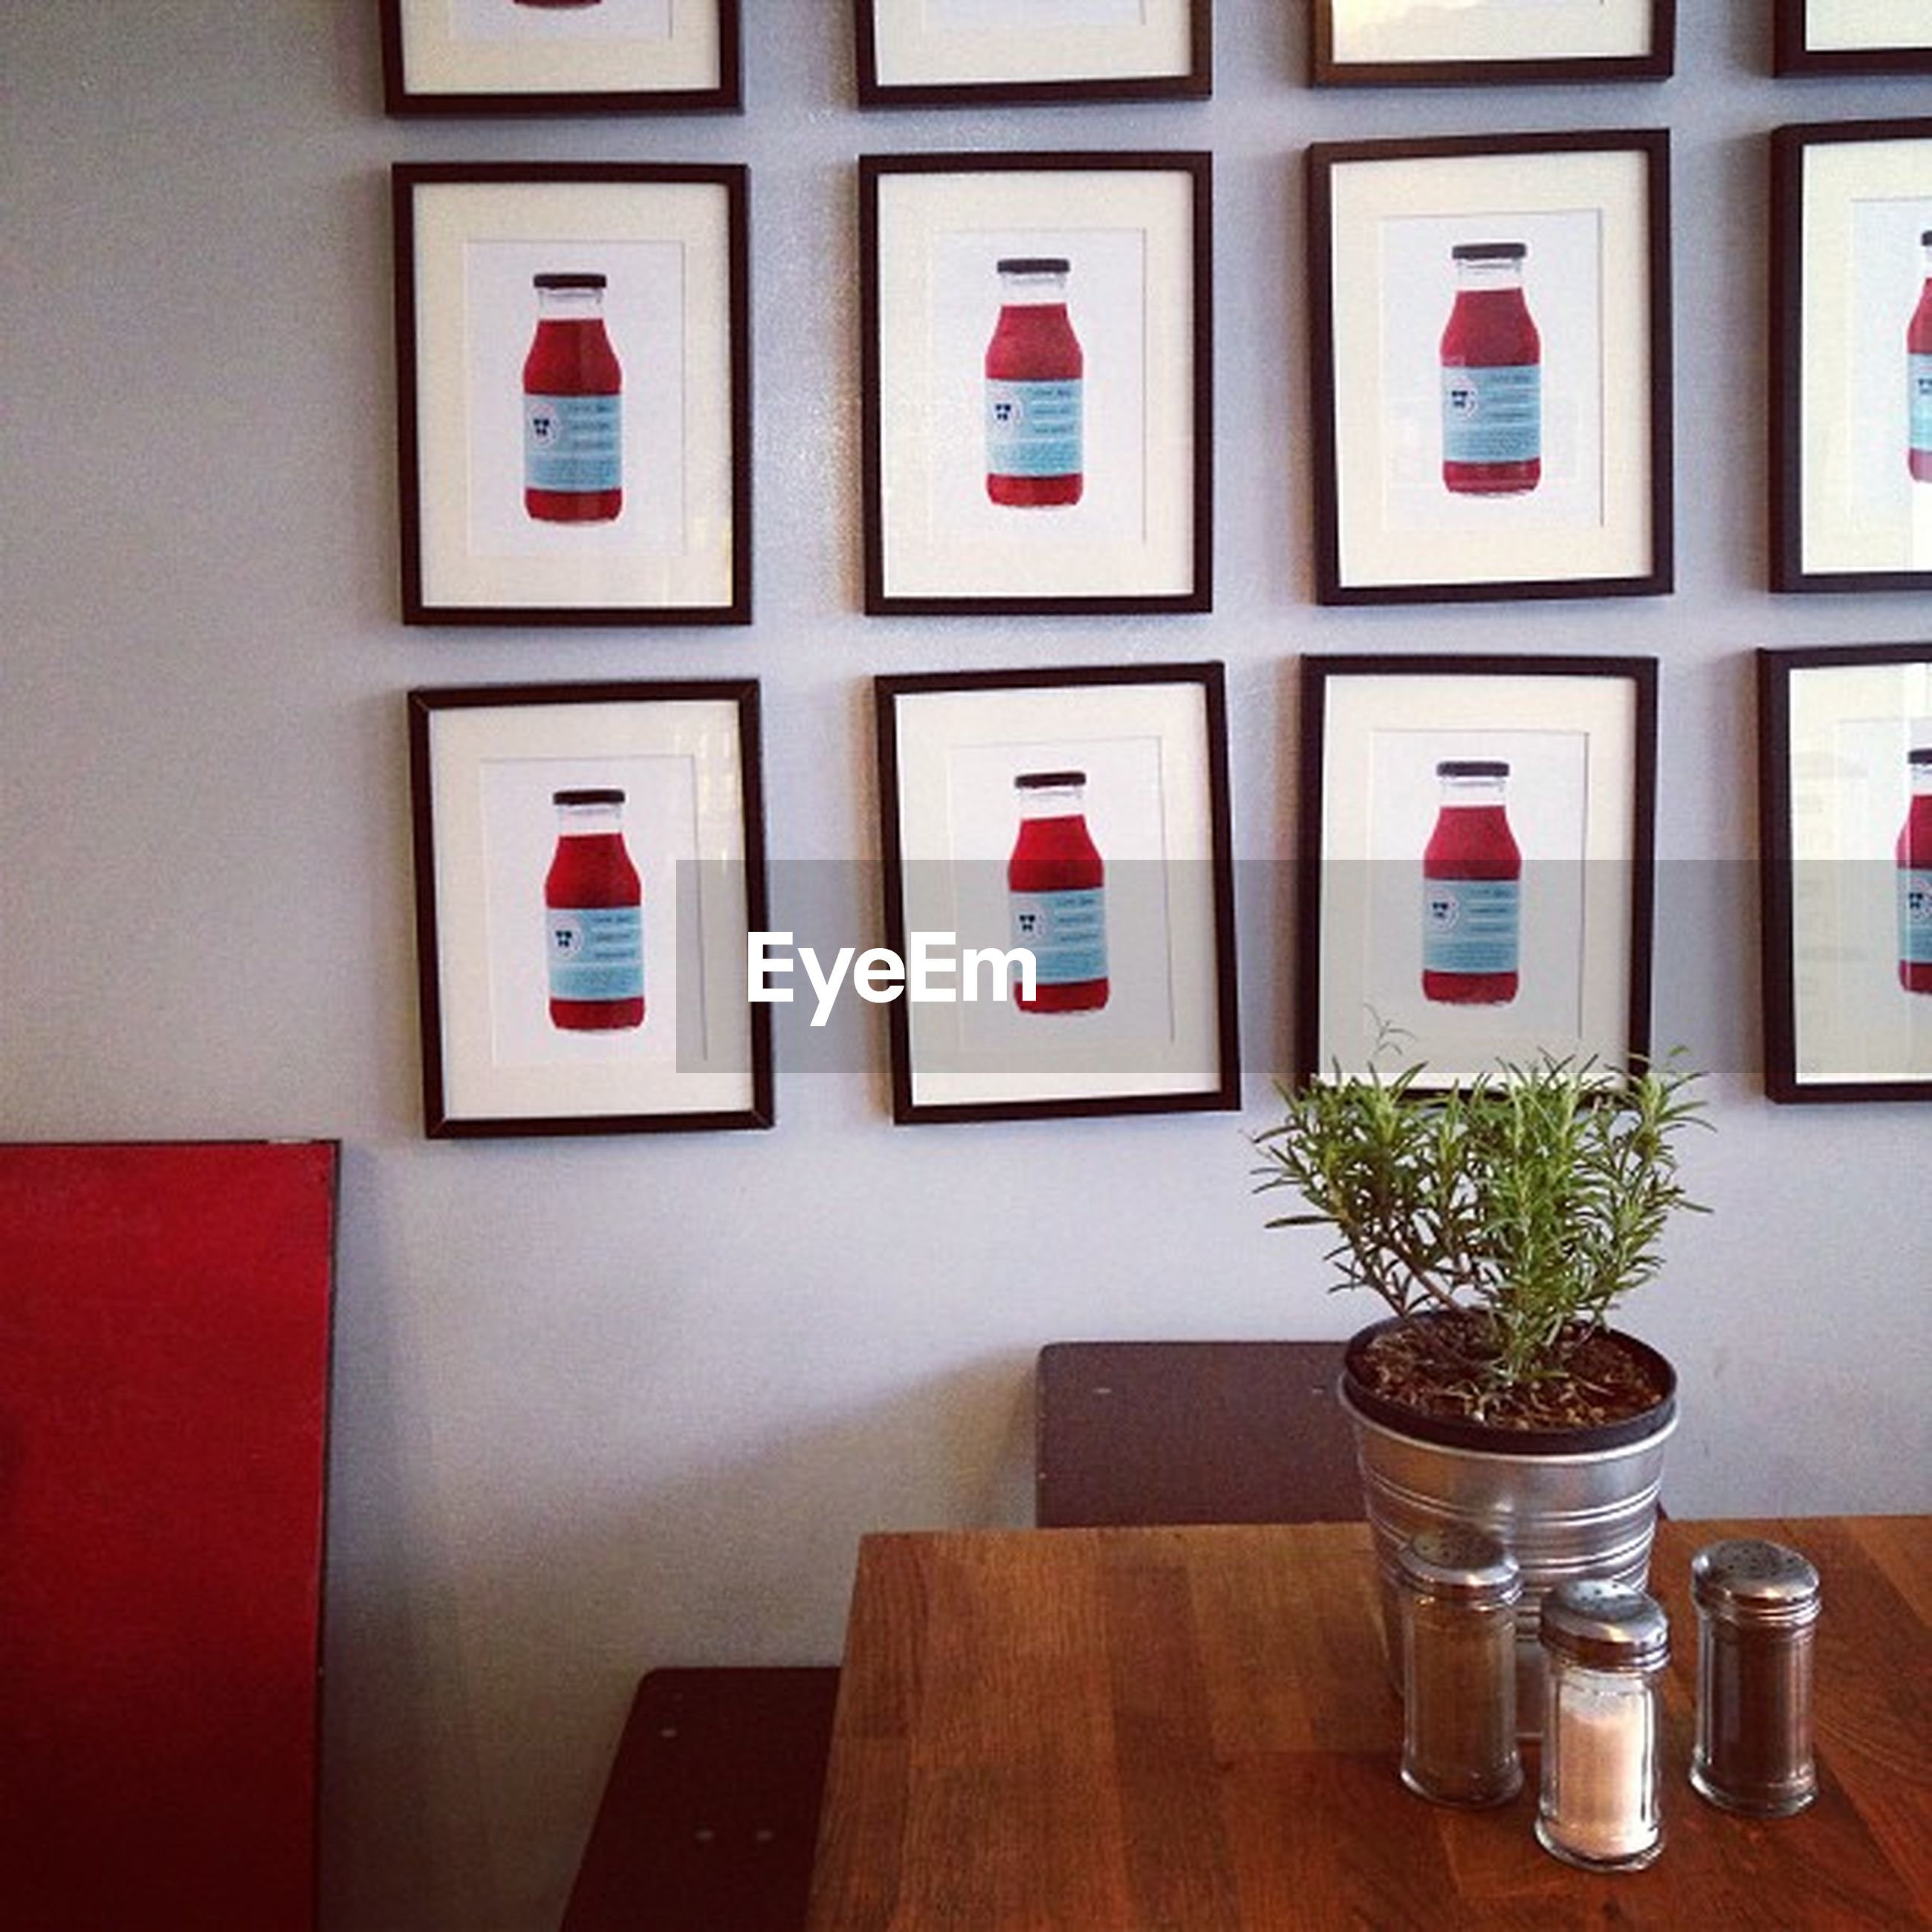 indoors, table, window, glass - material, still life, home interior, transparent, arrangement, no people, red, variation, multi colored, in a row, side by side, absence, empty, decoration, wall, shelf, glass